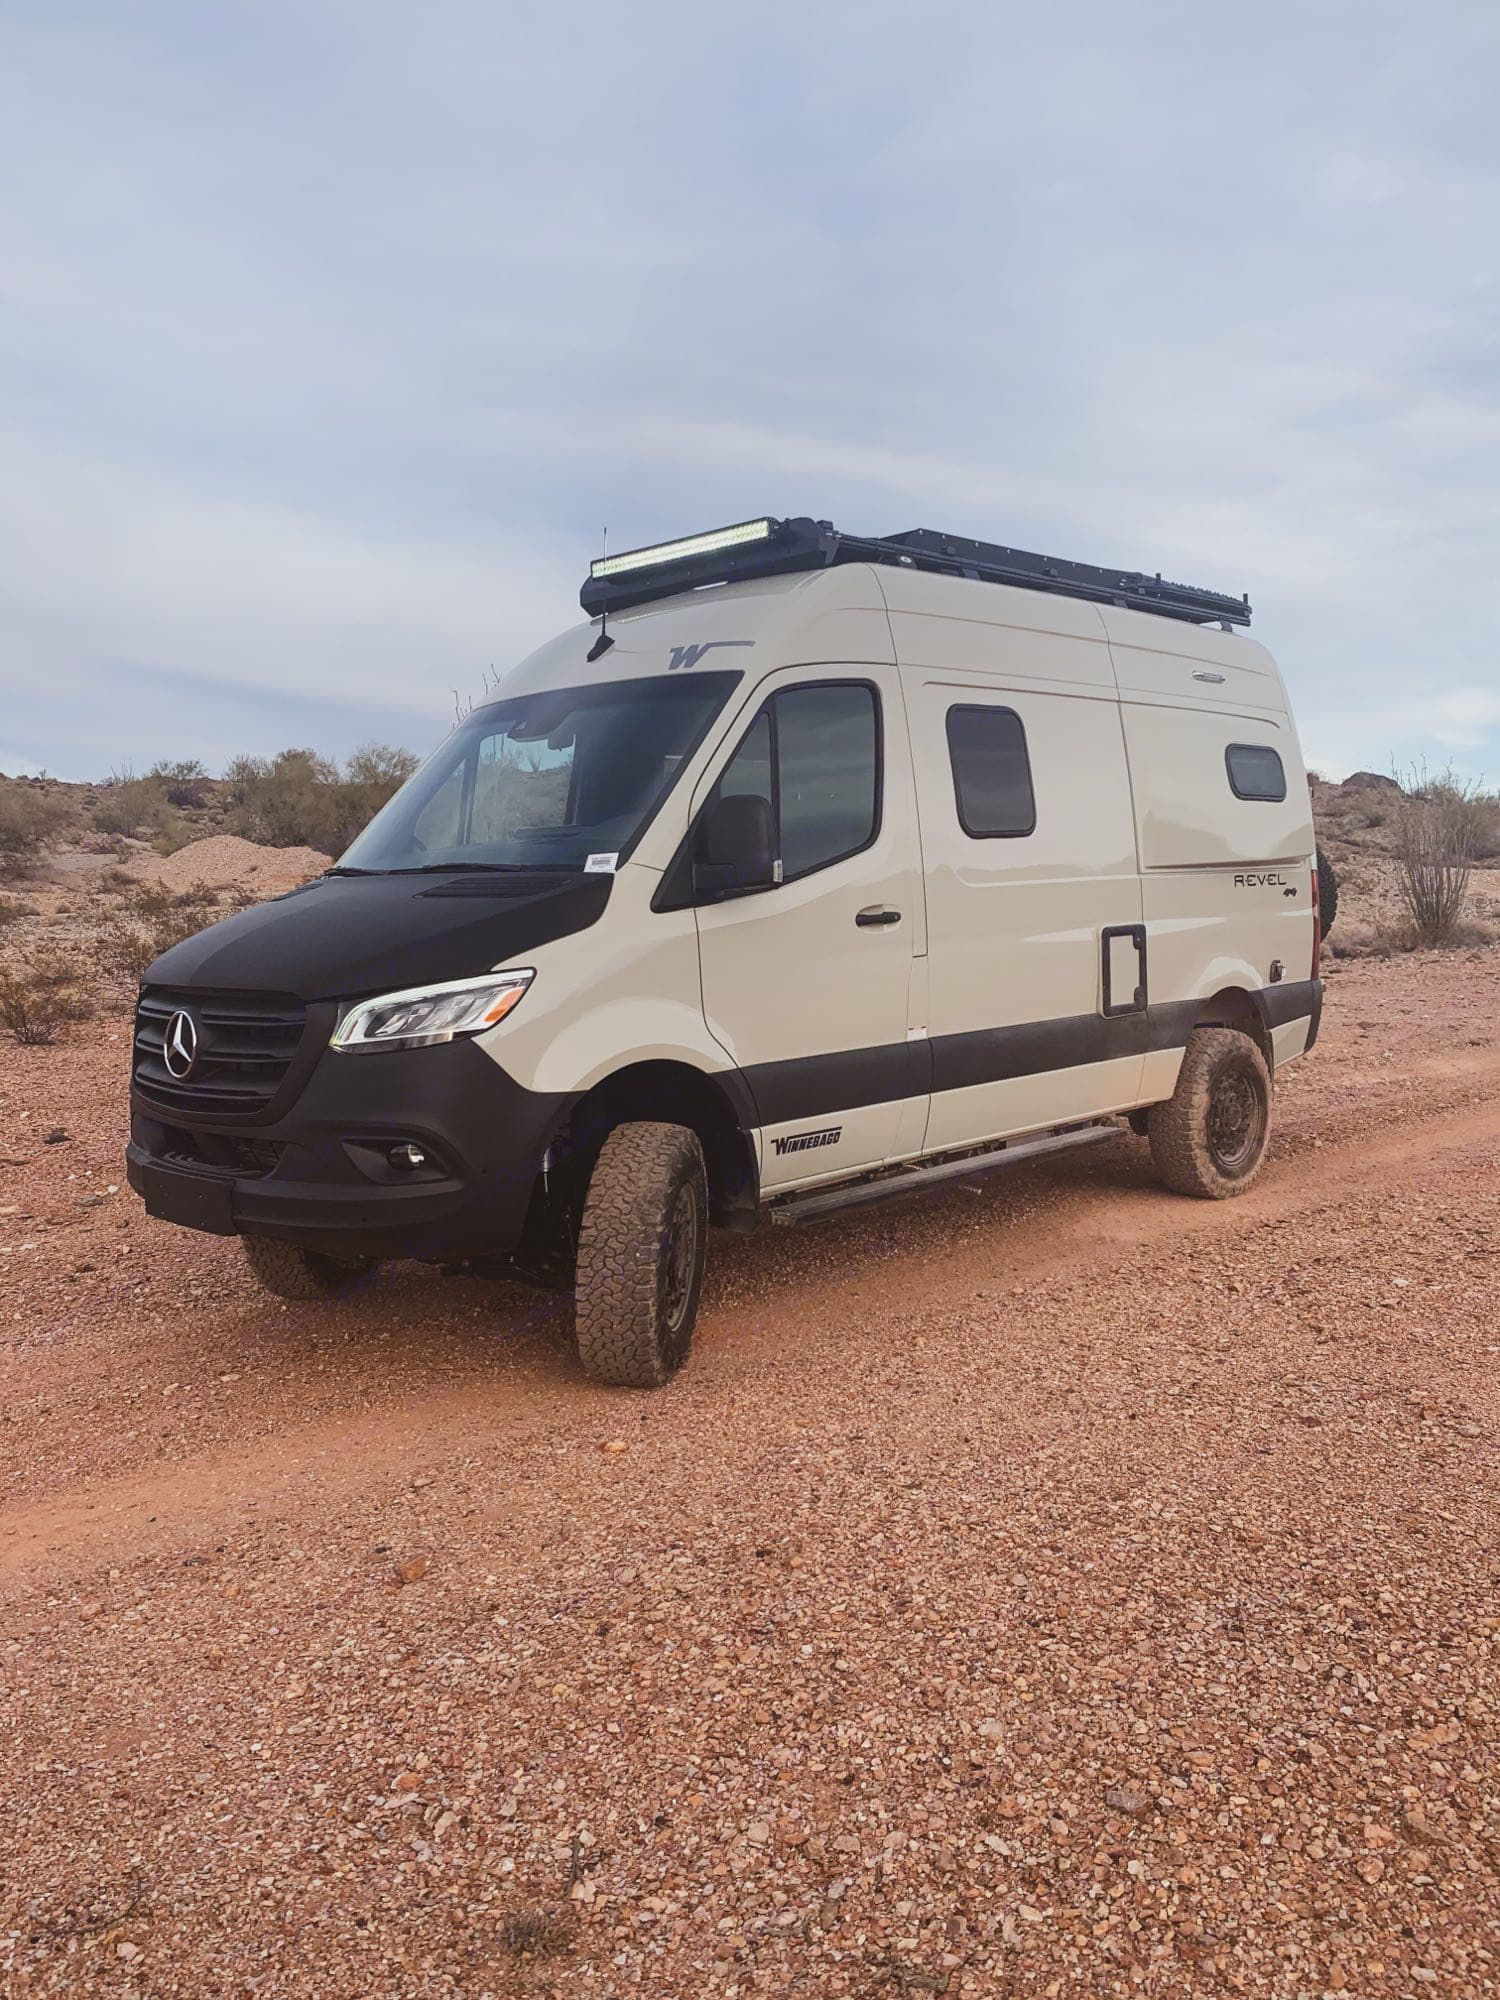 This photo was taken in the desert just outside of AZ. The front hood is a carbon fiber wrap to avoid scratches/dents from driving.. Winnebago Revel 2021